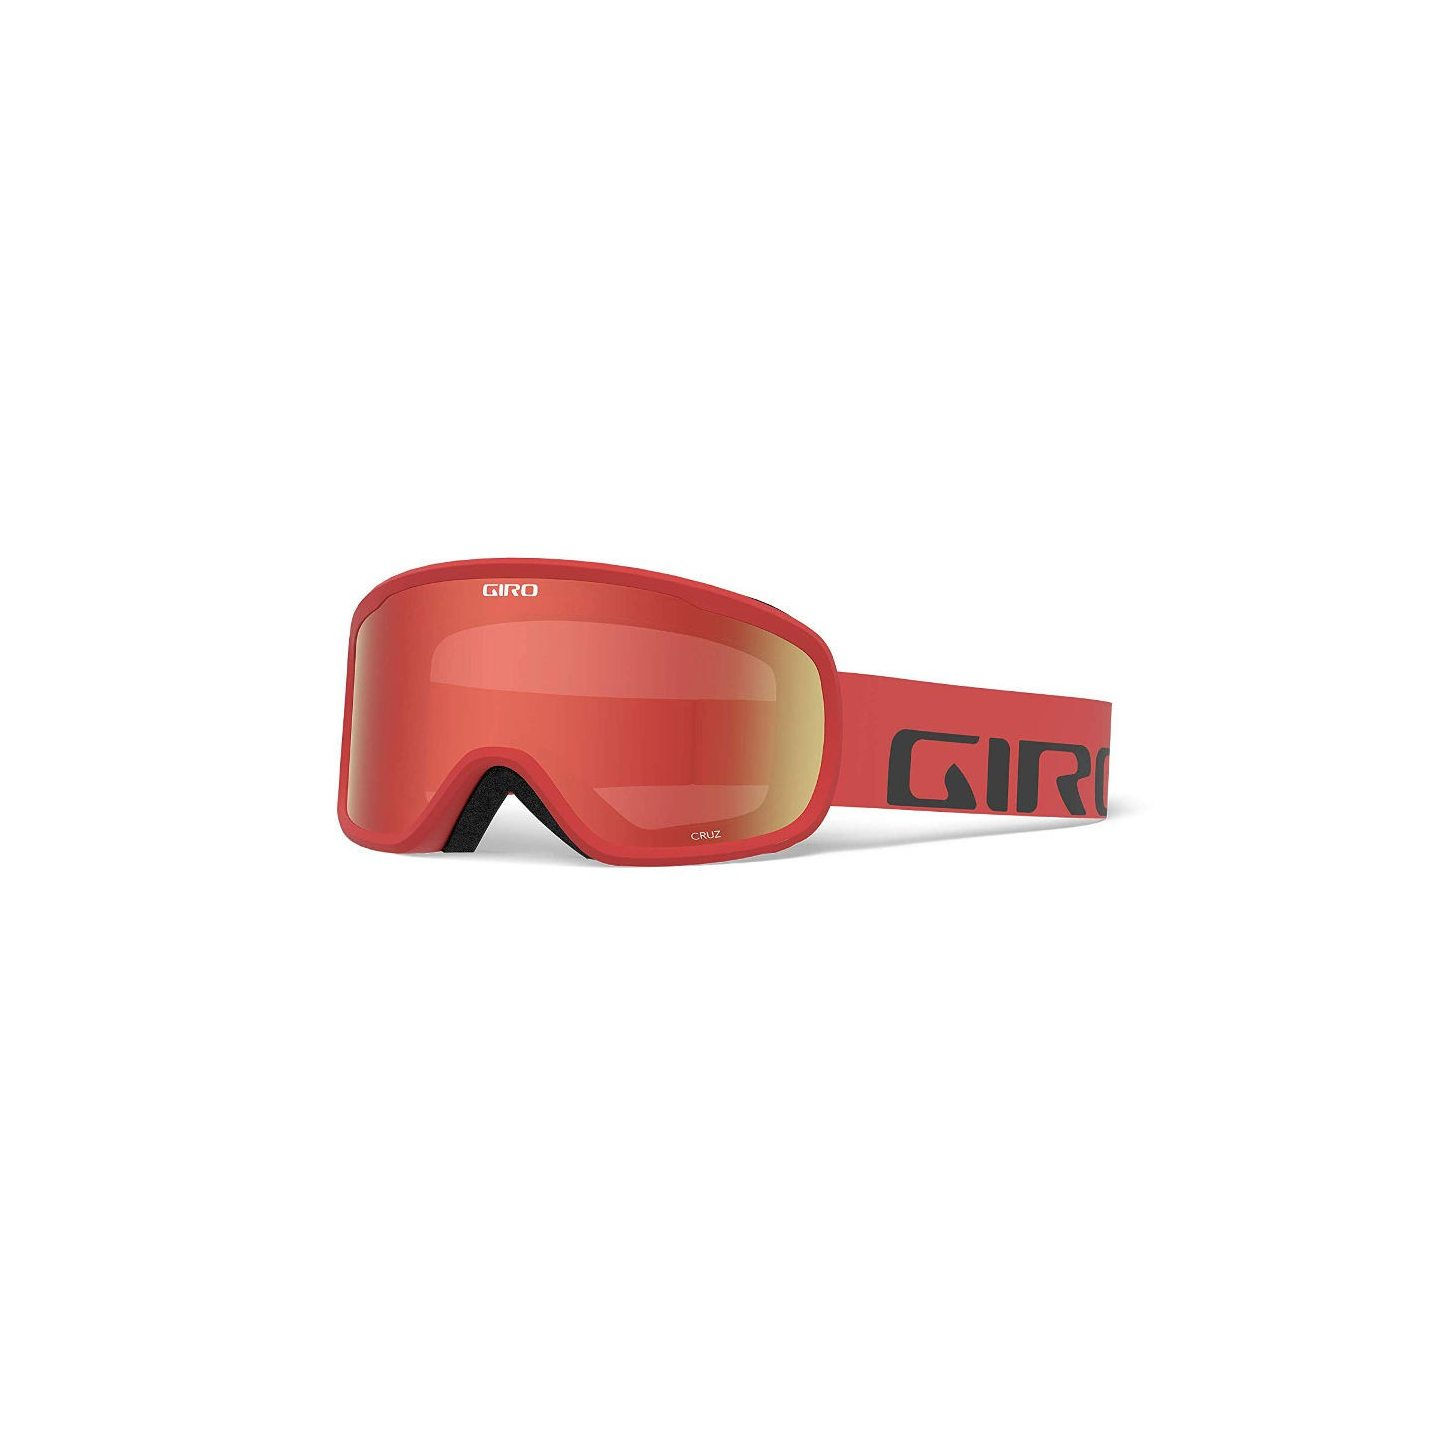 Gogle Giro Cruz Red Wordmark S2